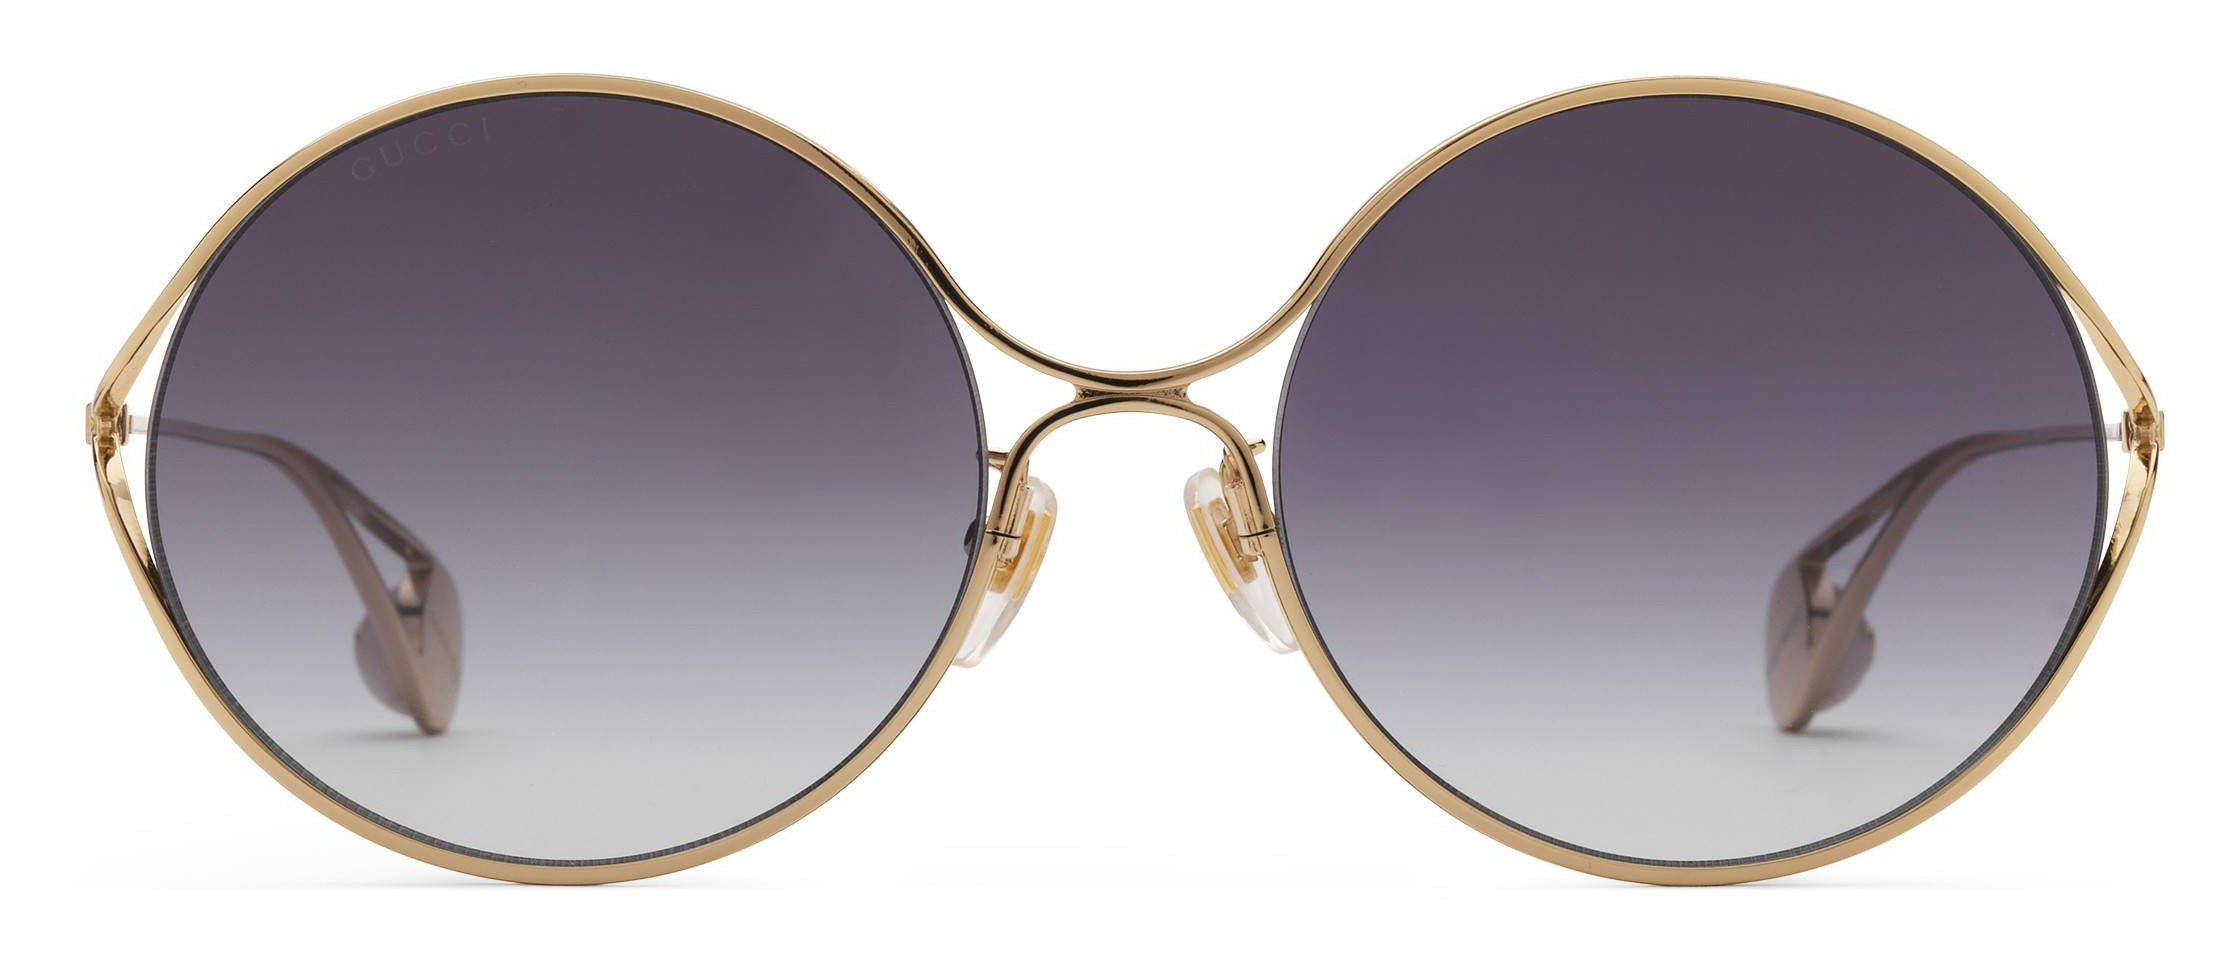 7241c8e29b057 Gucci - Round Frame Metal Sunglasses - Gold and Silver - Gucci Eyewear